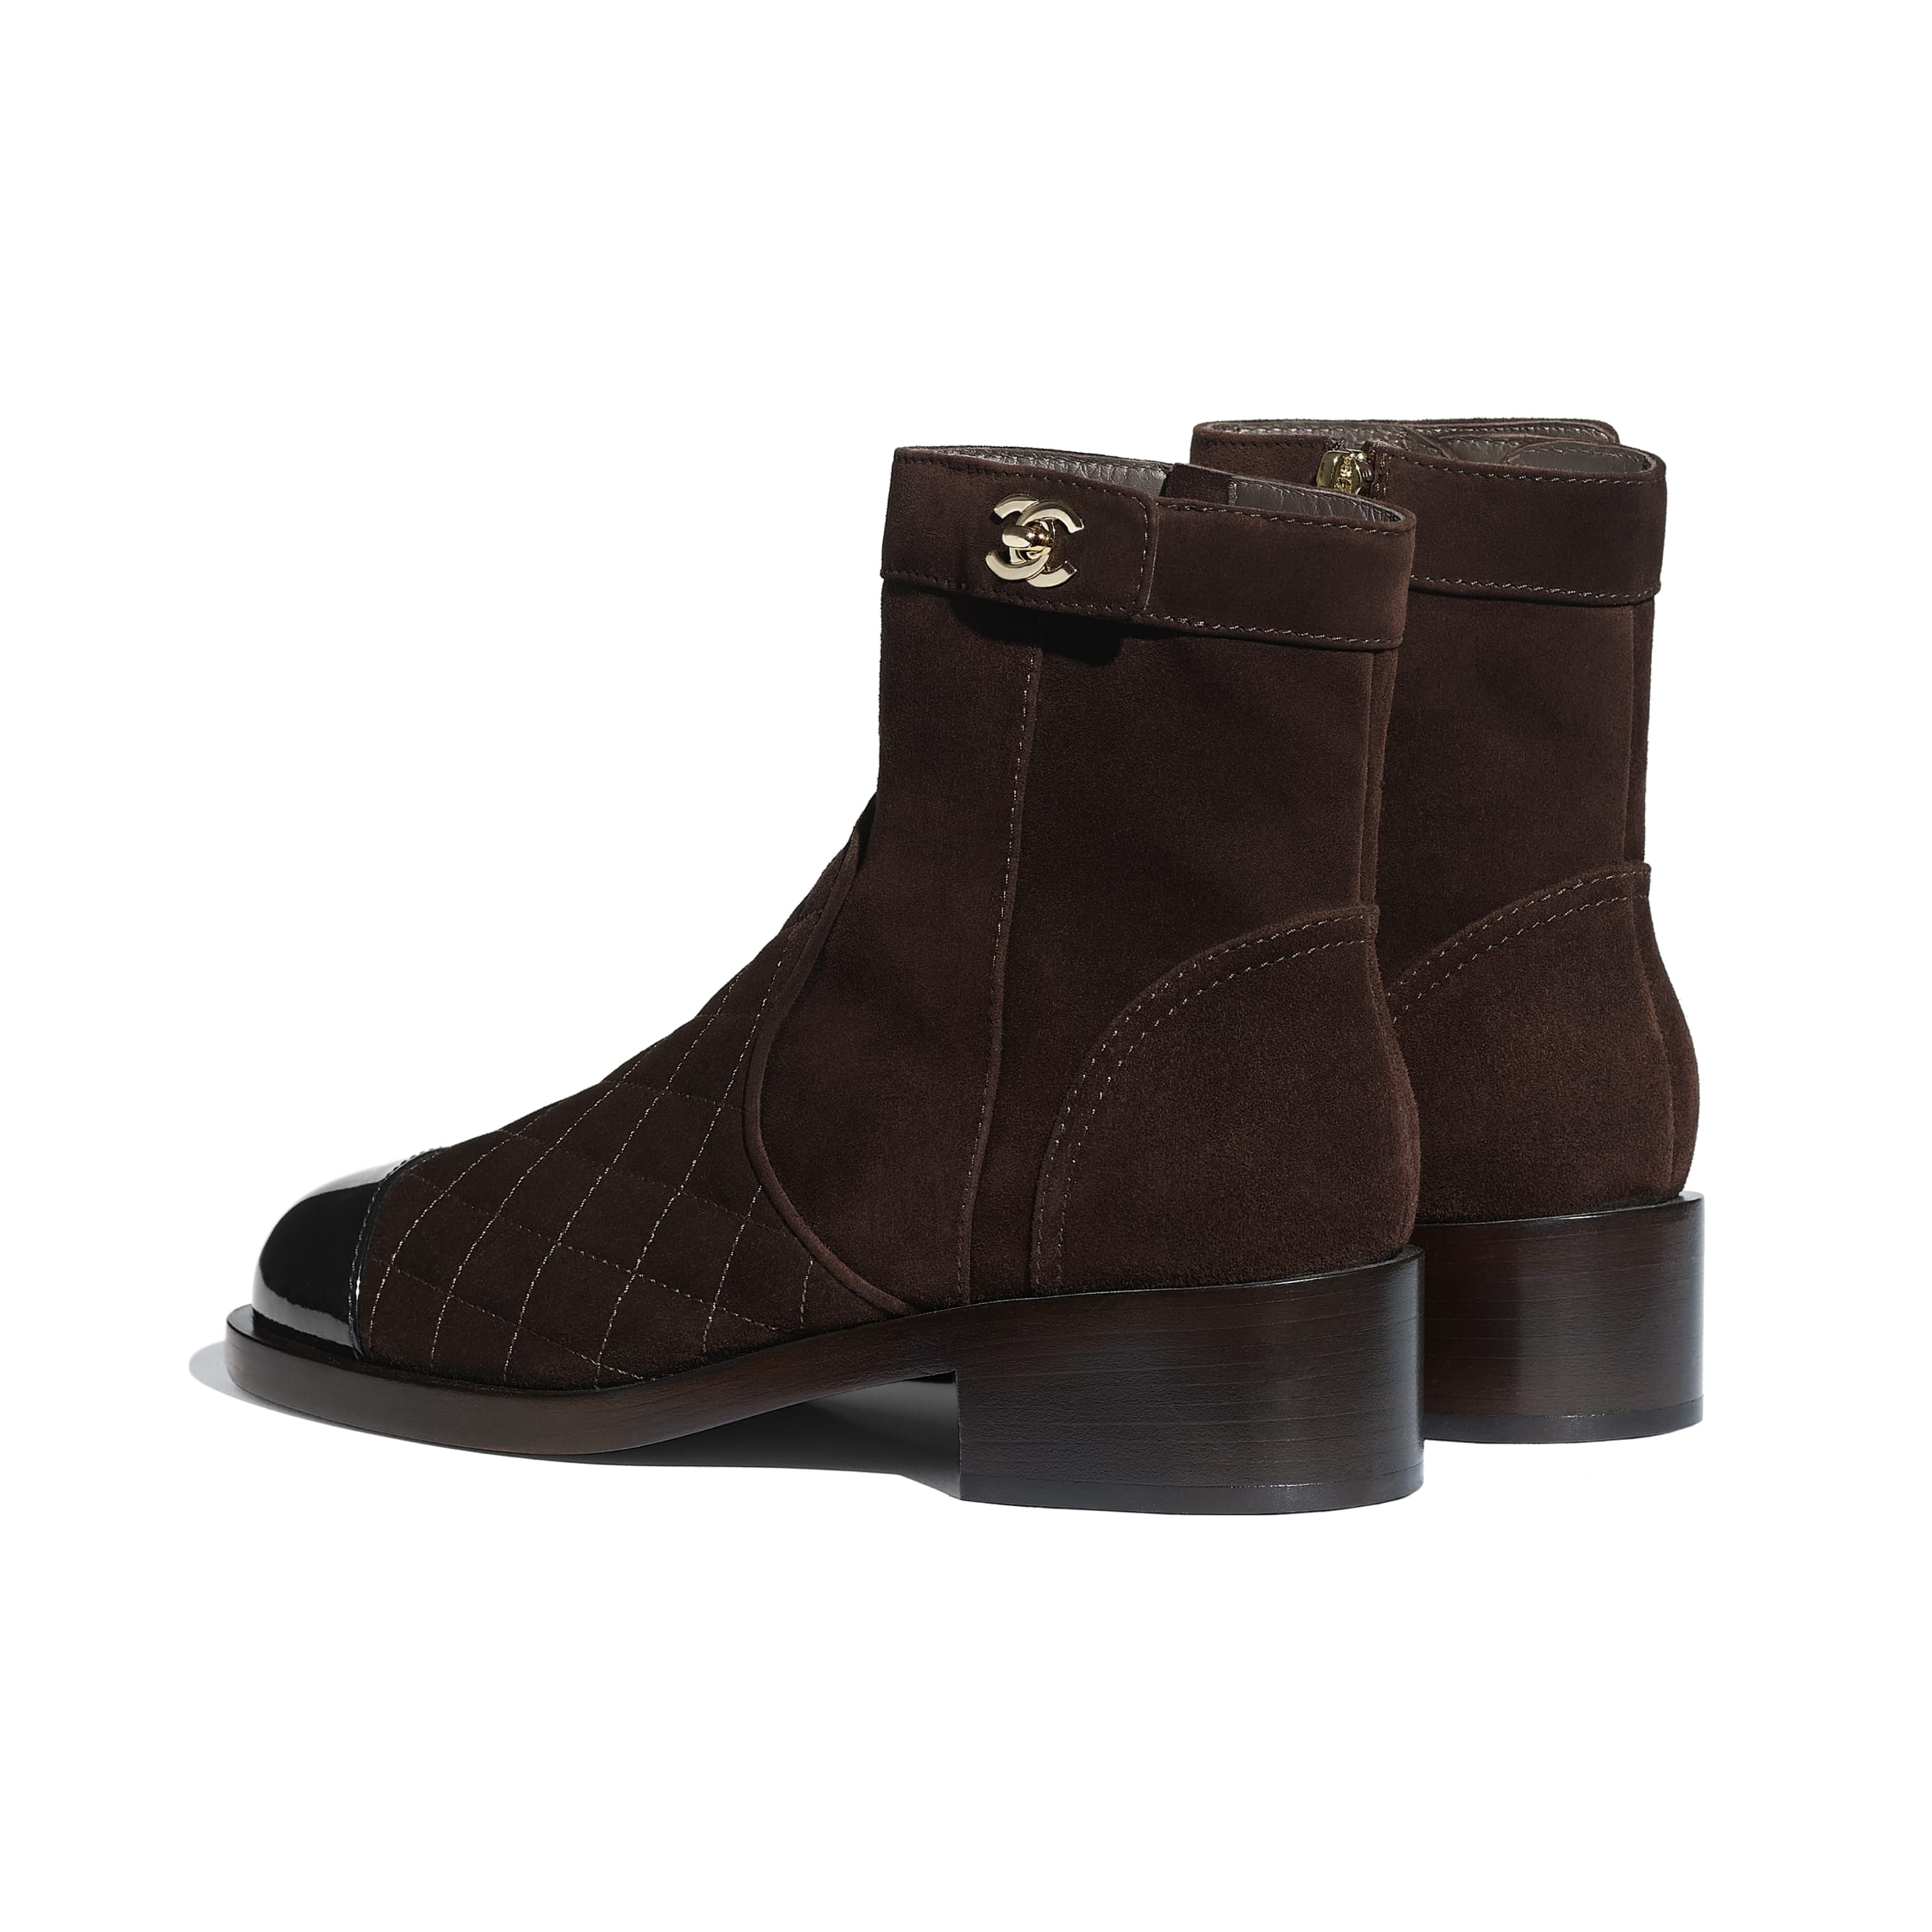 Ankle Boots - Brown & Black - Suede Calfskin & Patent Calfskin - CHANEL - Other view - see standard sized version